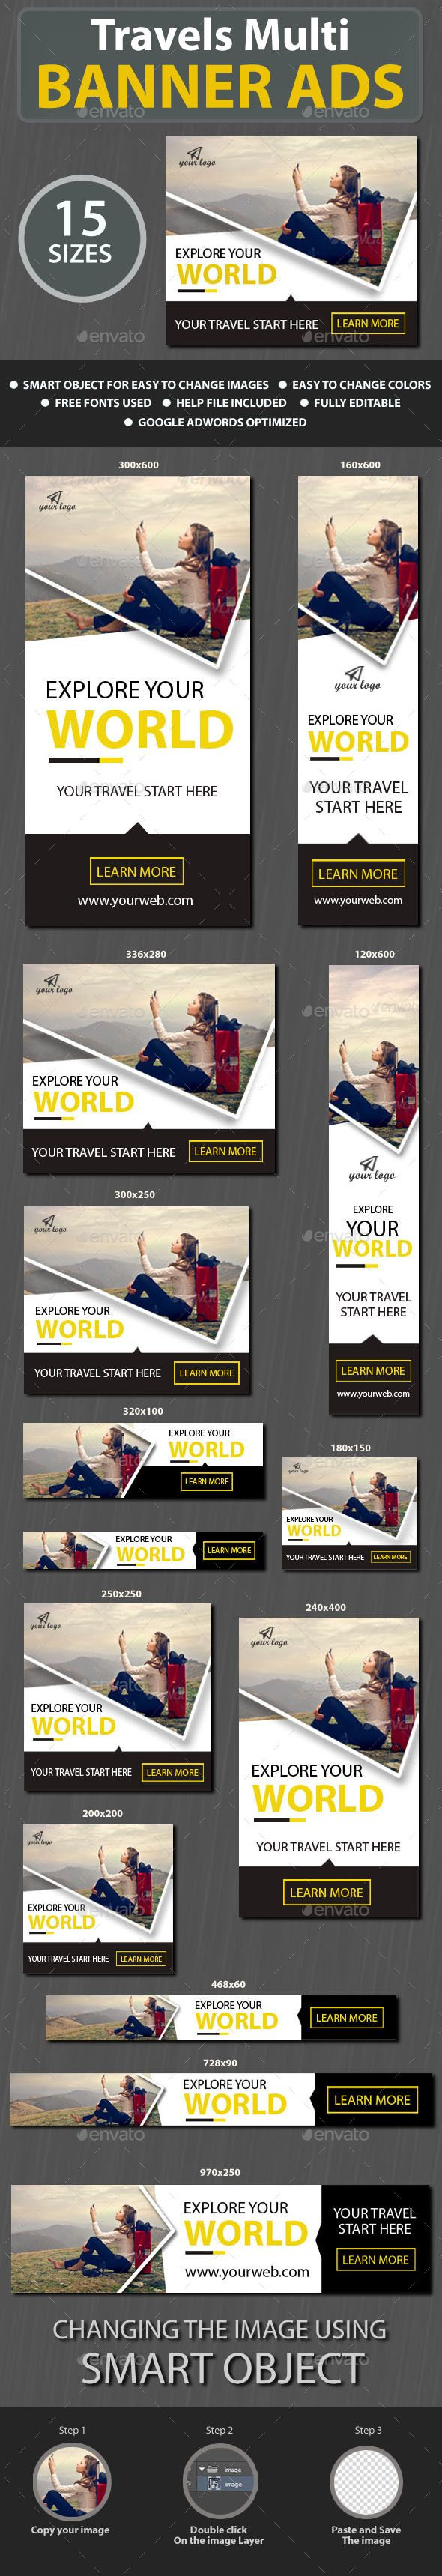 Travels Web Banner Ads Template #design Download: http://graphicriver.net/item/travels-web-banner-ads/12187247?ref=ksioks